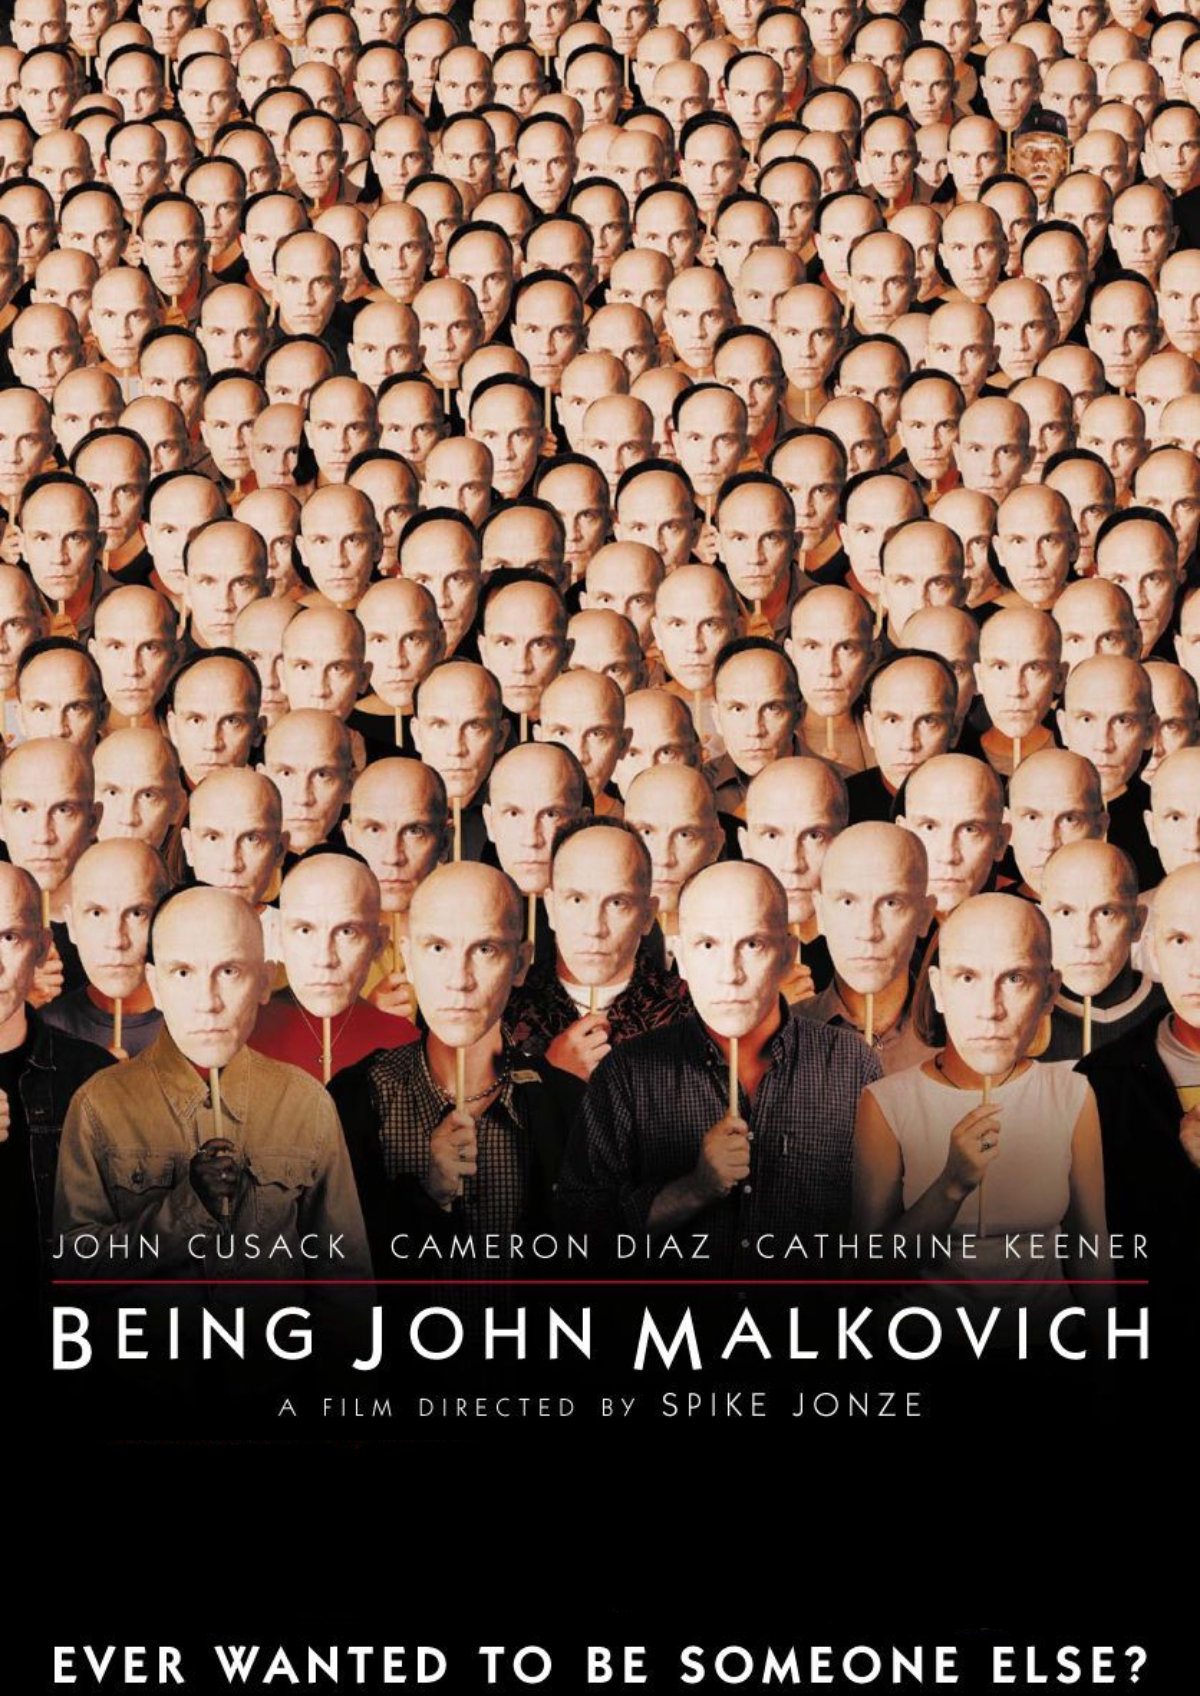 'Being John Malkovich' movie poster